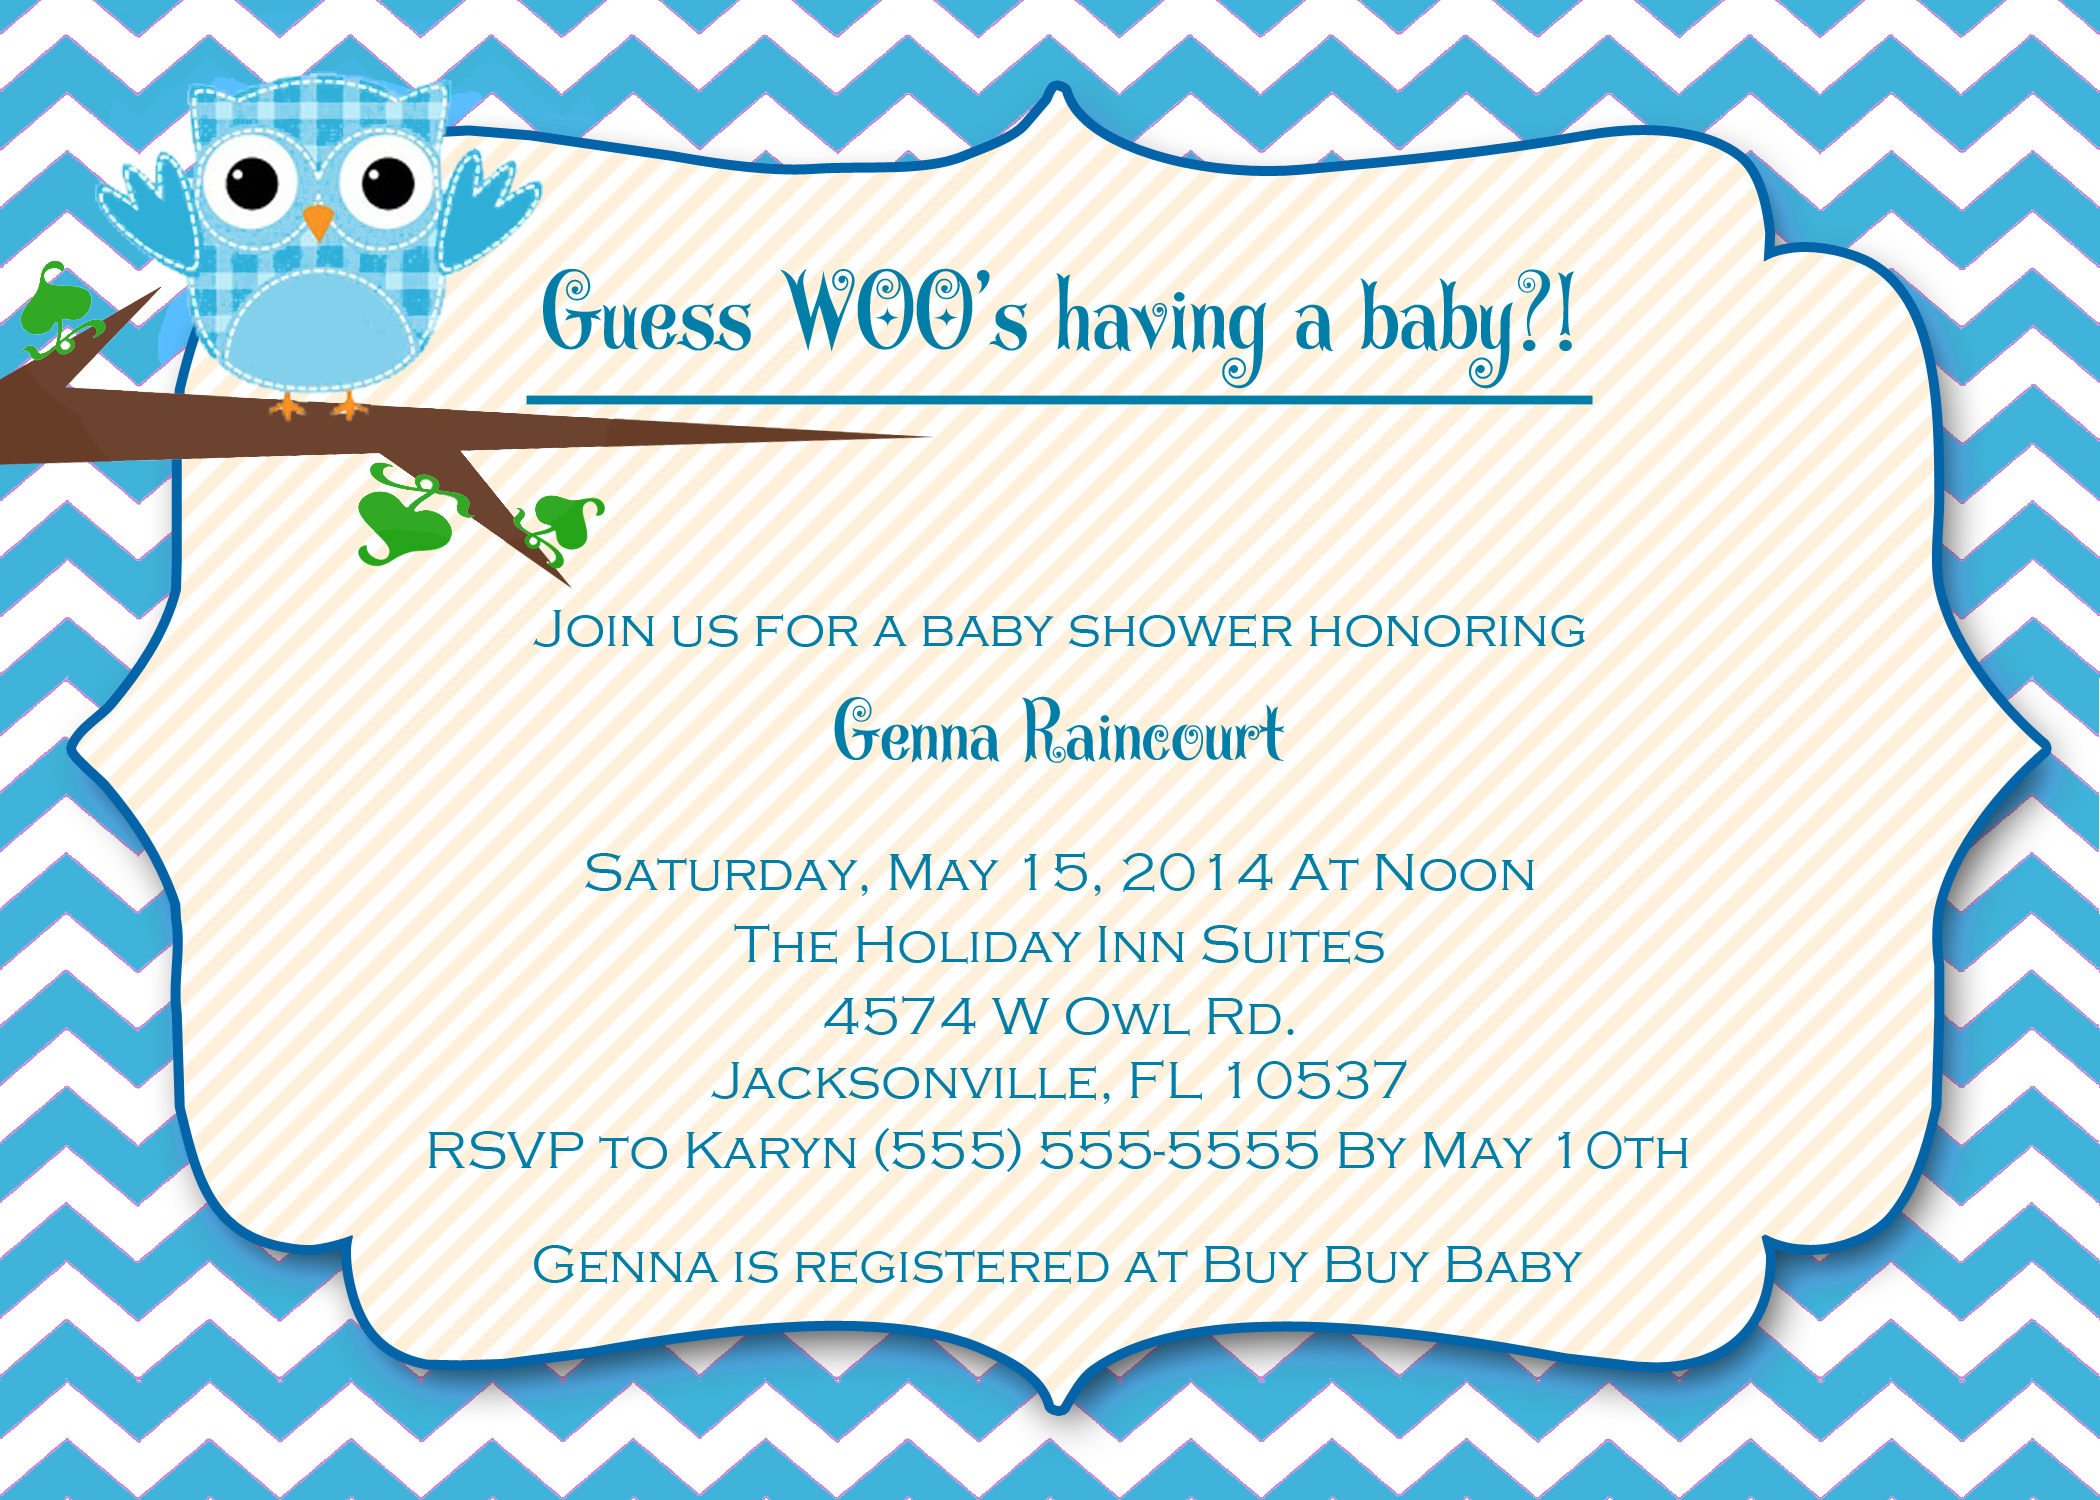 Baby boy background wallpaper baby boy background images baby boy - Funny Baby Shower Invitations 27 Background Wallpaper Funny Baby Shower Invitations 27 Background Wallpaper